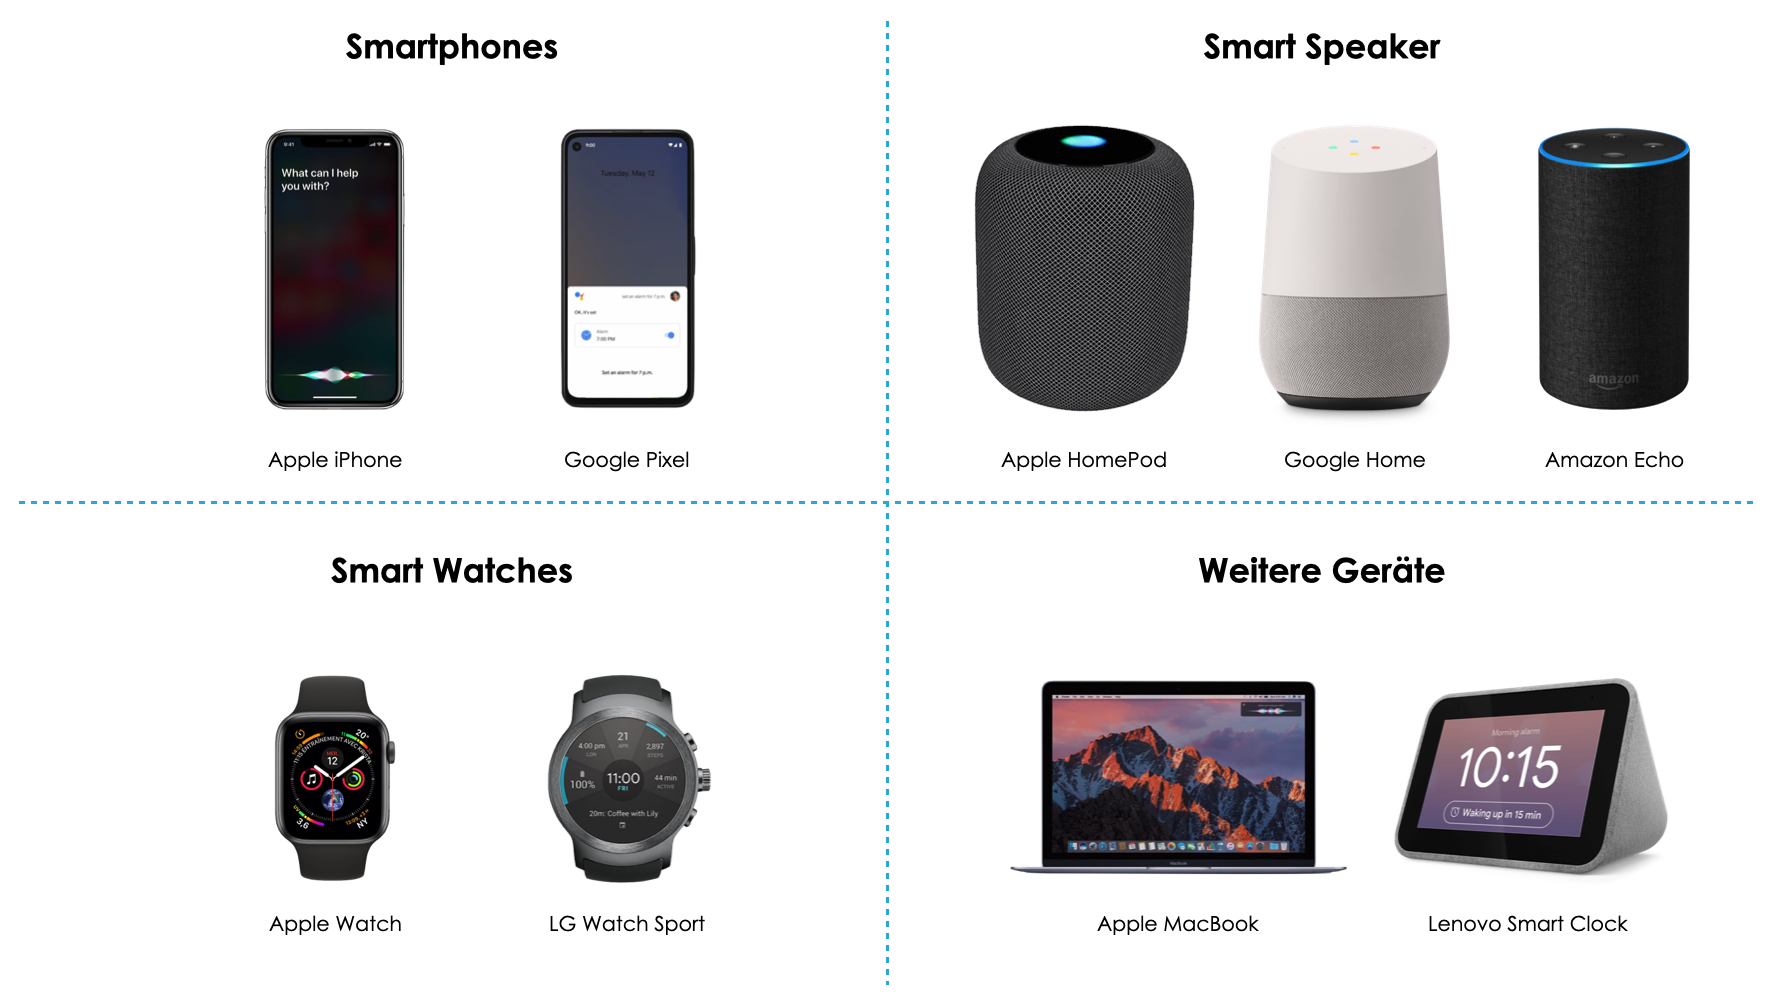 Digital_Assistants_Devices